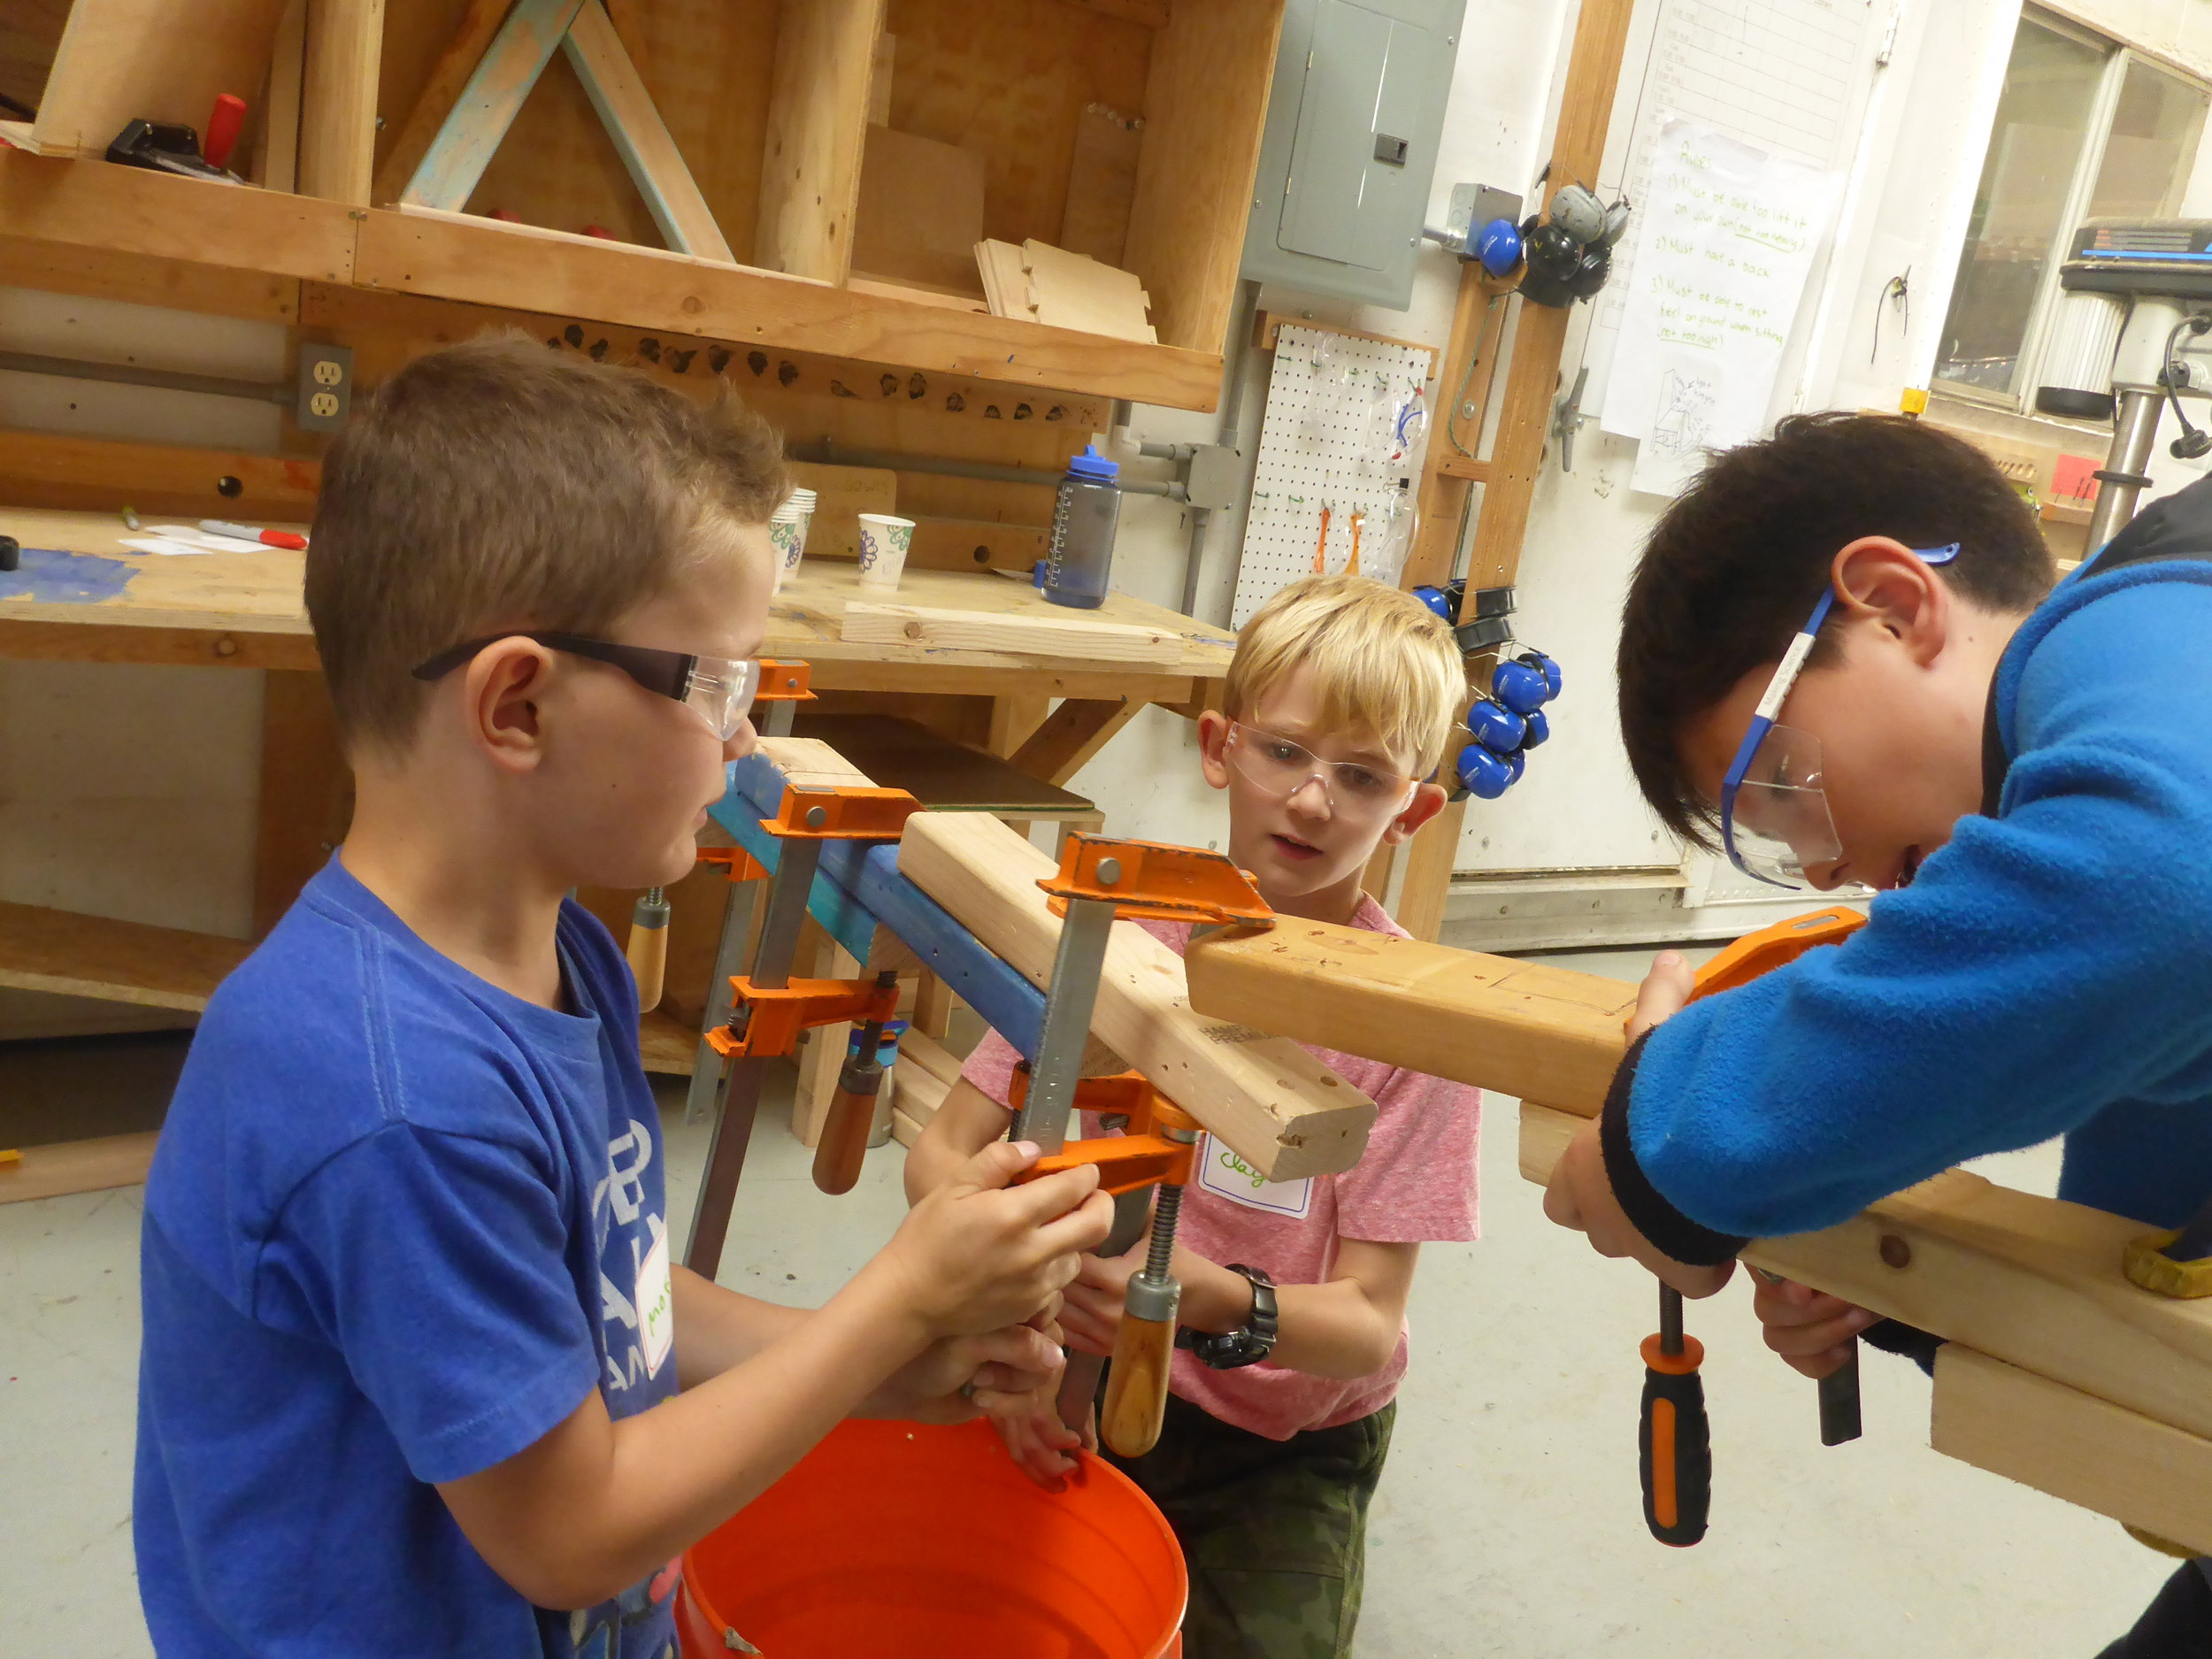 So many opportunities to accomplish one of our Tinkering School goals: collaborate and make friends!